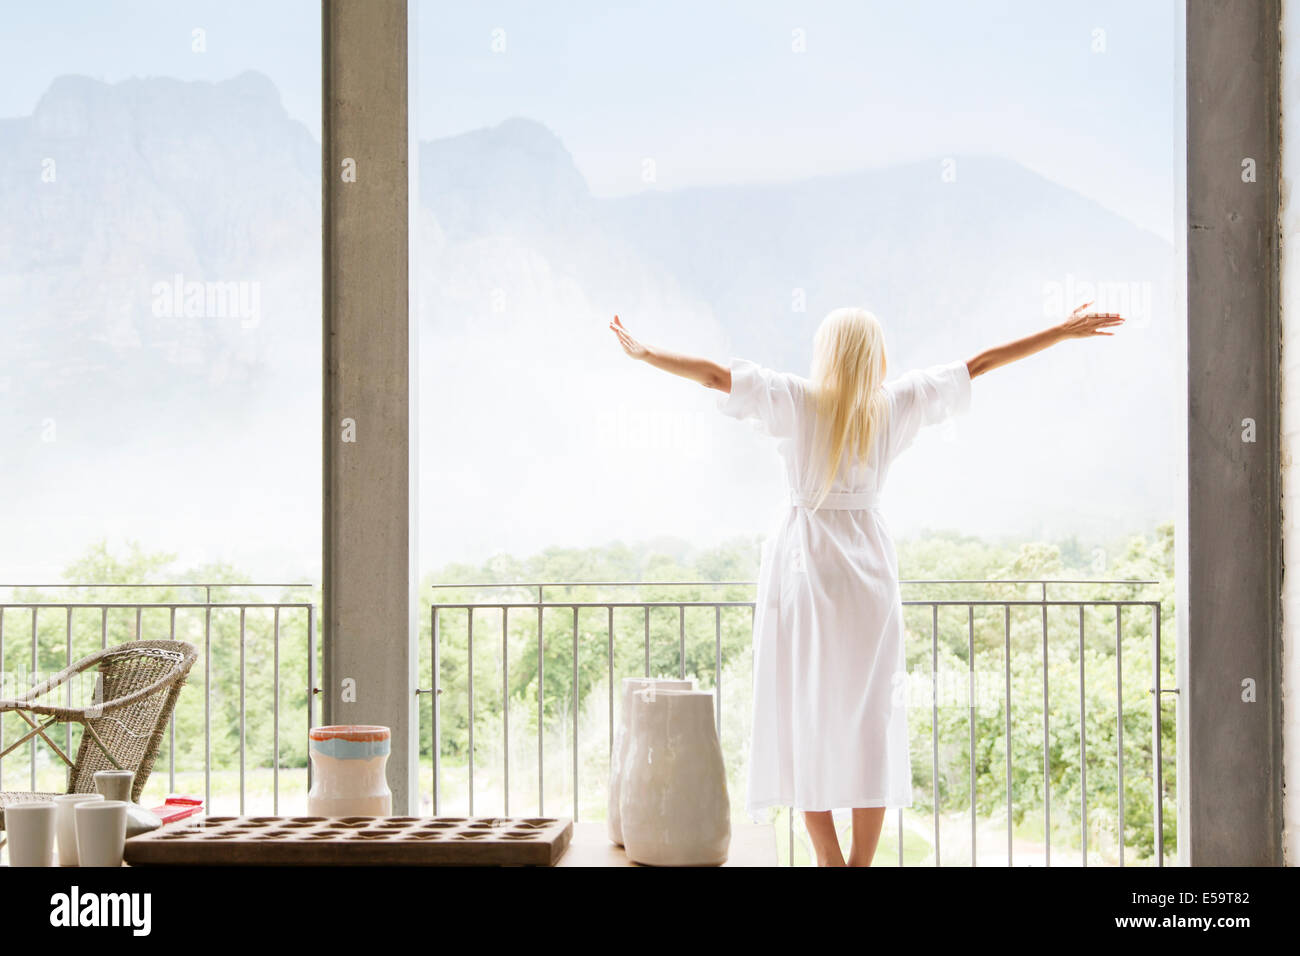 Woman in bathrobe overlooking landscape - Stock Image